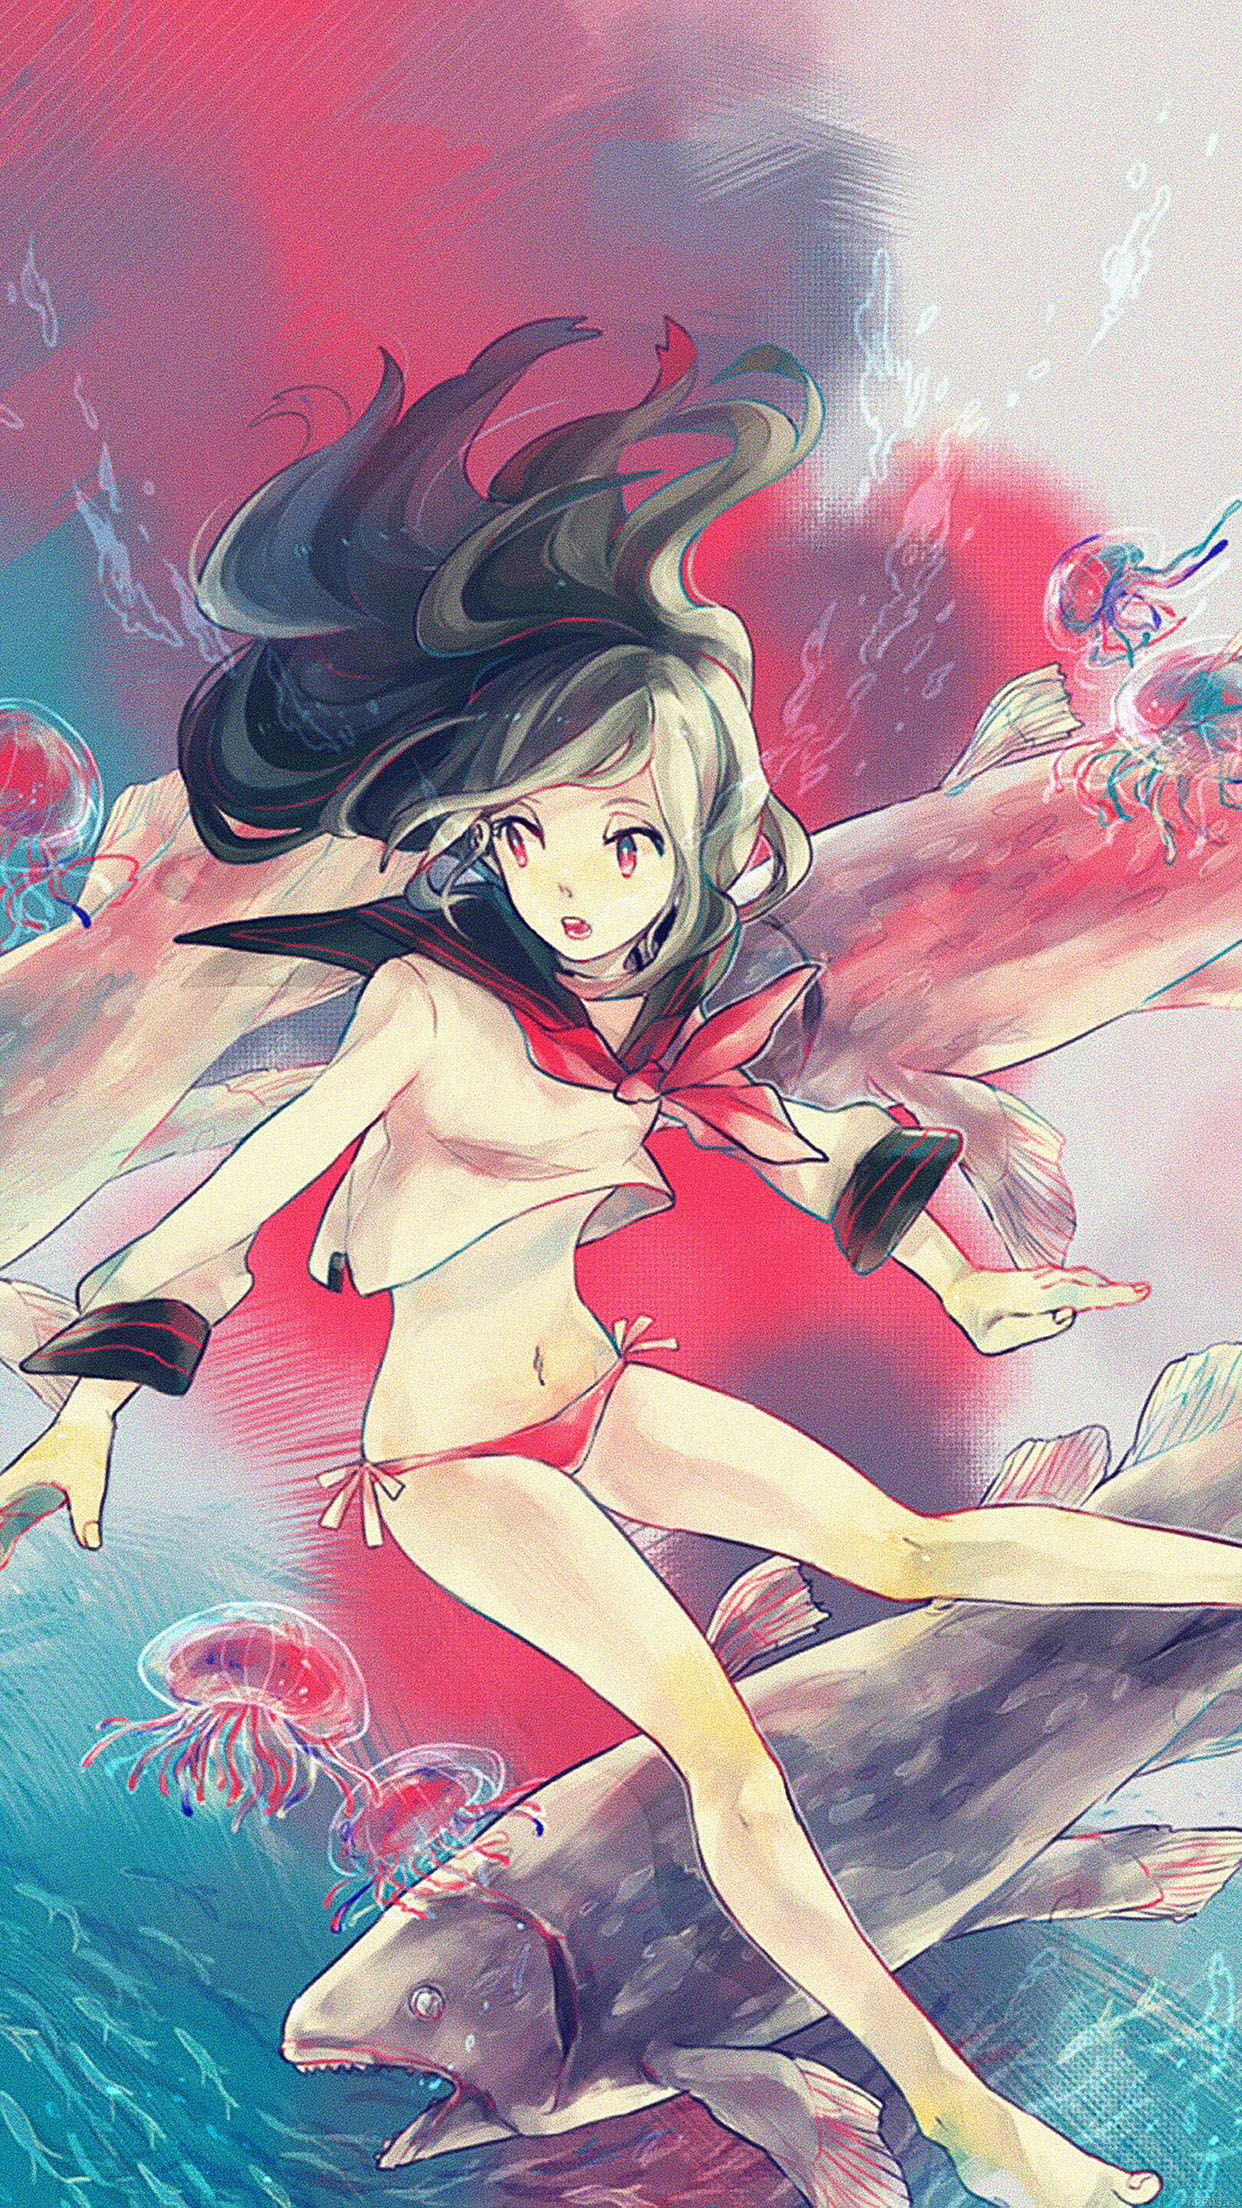 Free Cute Wallpaper For Iphone 4 Ac24 Wallpaper Girl In Ocean Anime Illust Papers Co